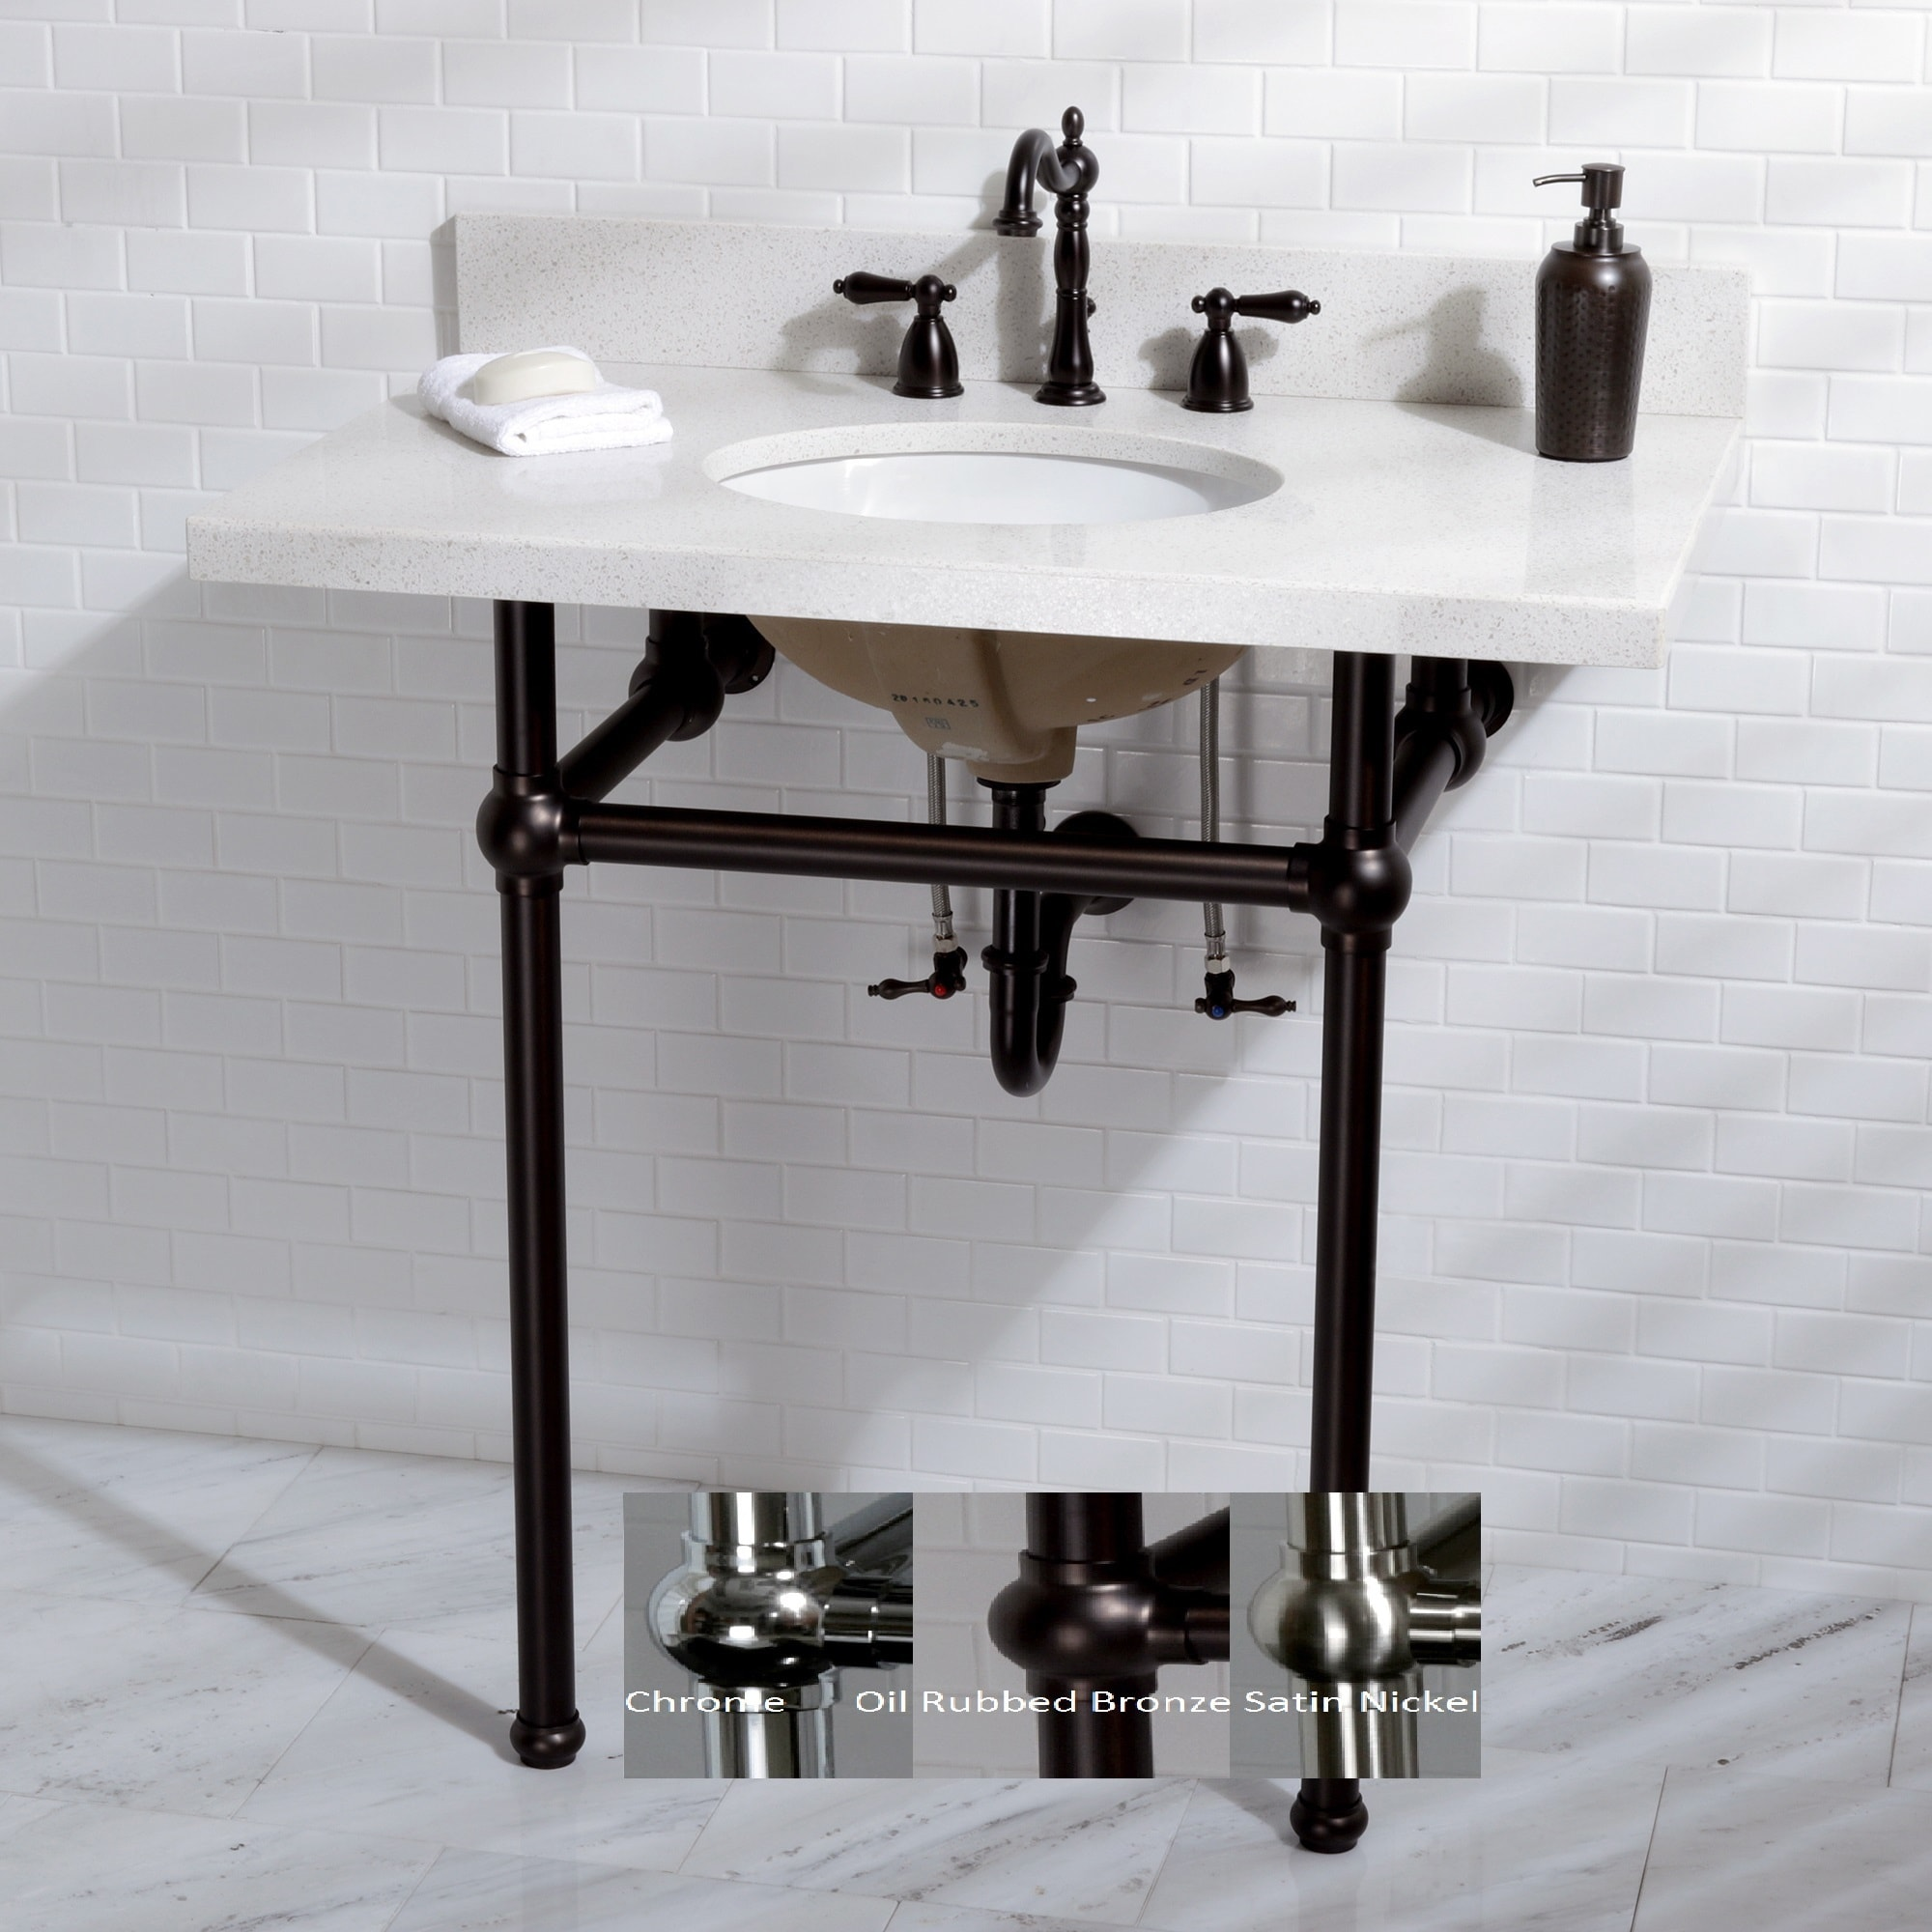 square basin top tiny in corner mount for centerset floating signature best sink compact bowl sinks bathroom undermount small hardware mini utility unit faucets washroom black kitchen full pedestal ring porcelain bathrooms vanity regent vessel vanities of bowls mounting size wall